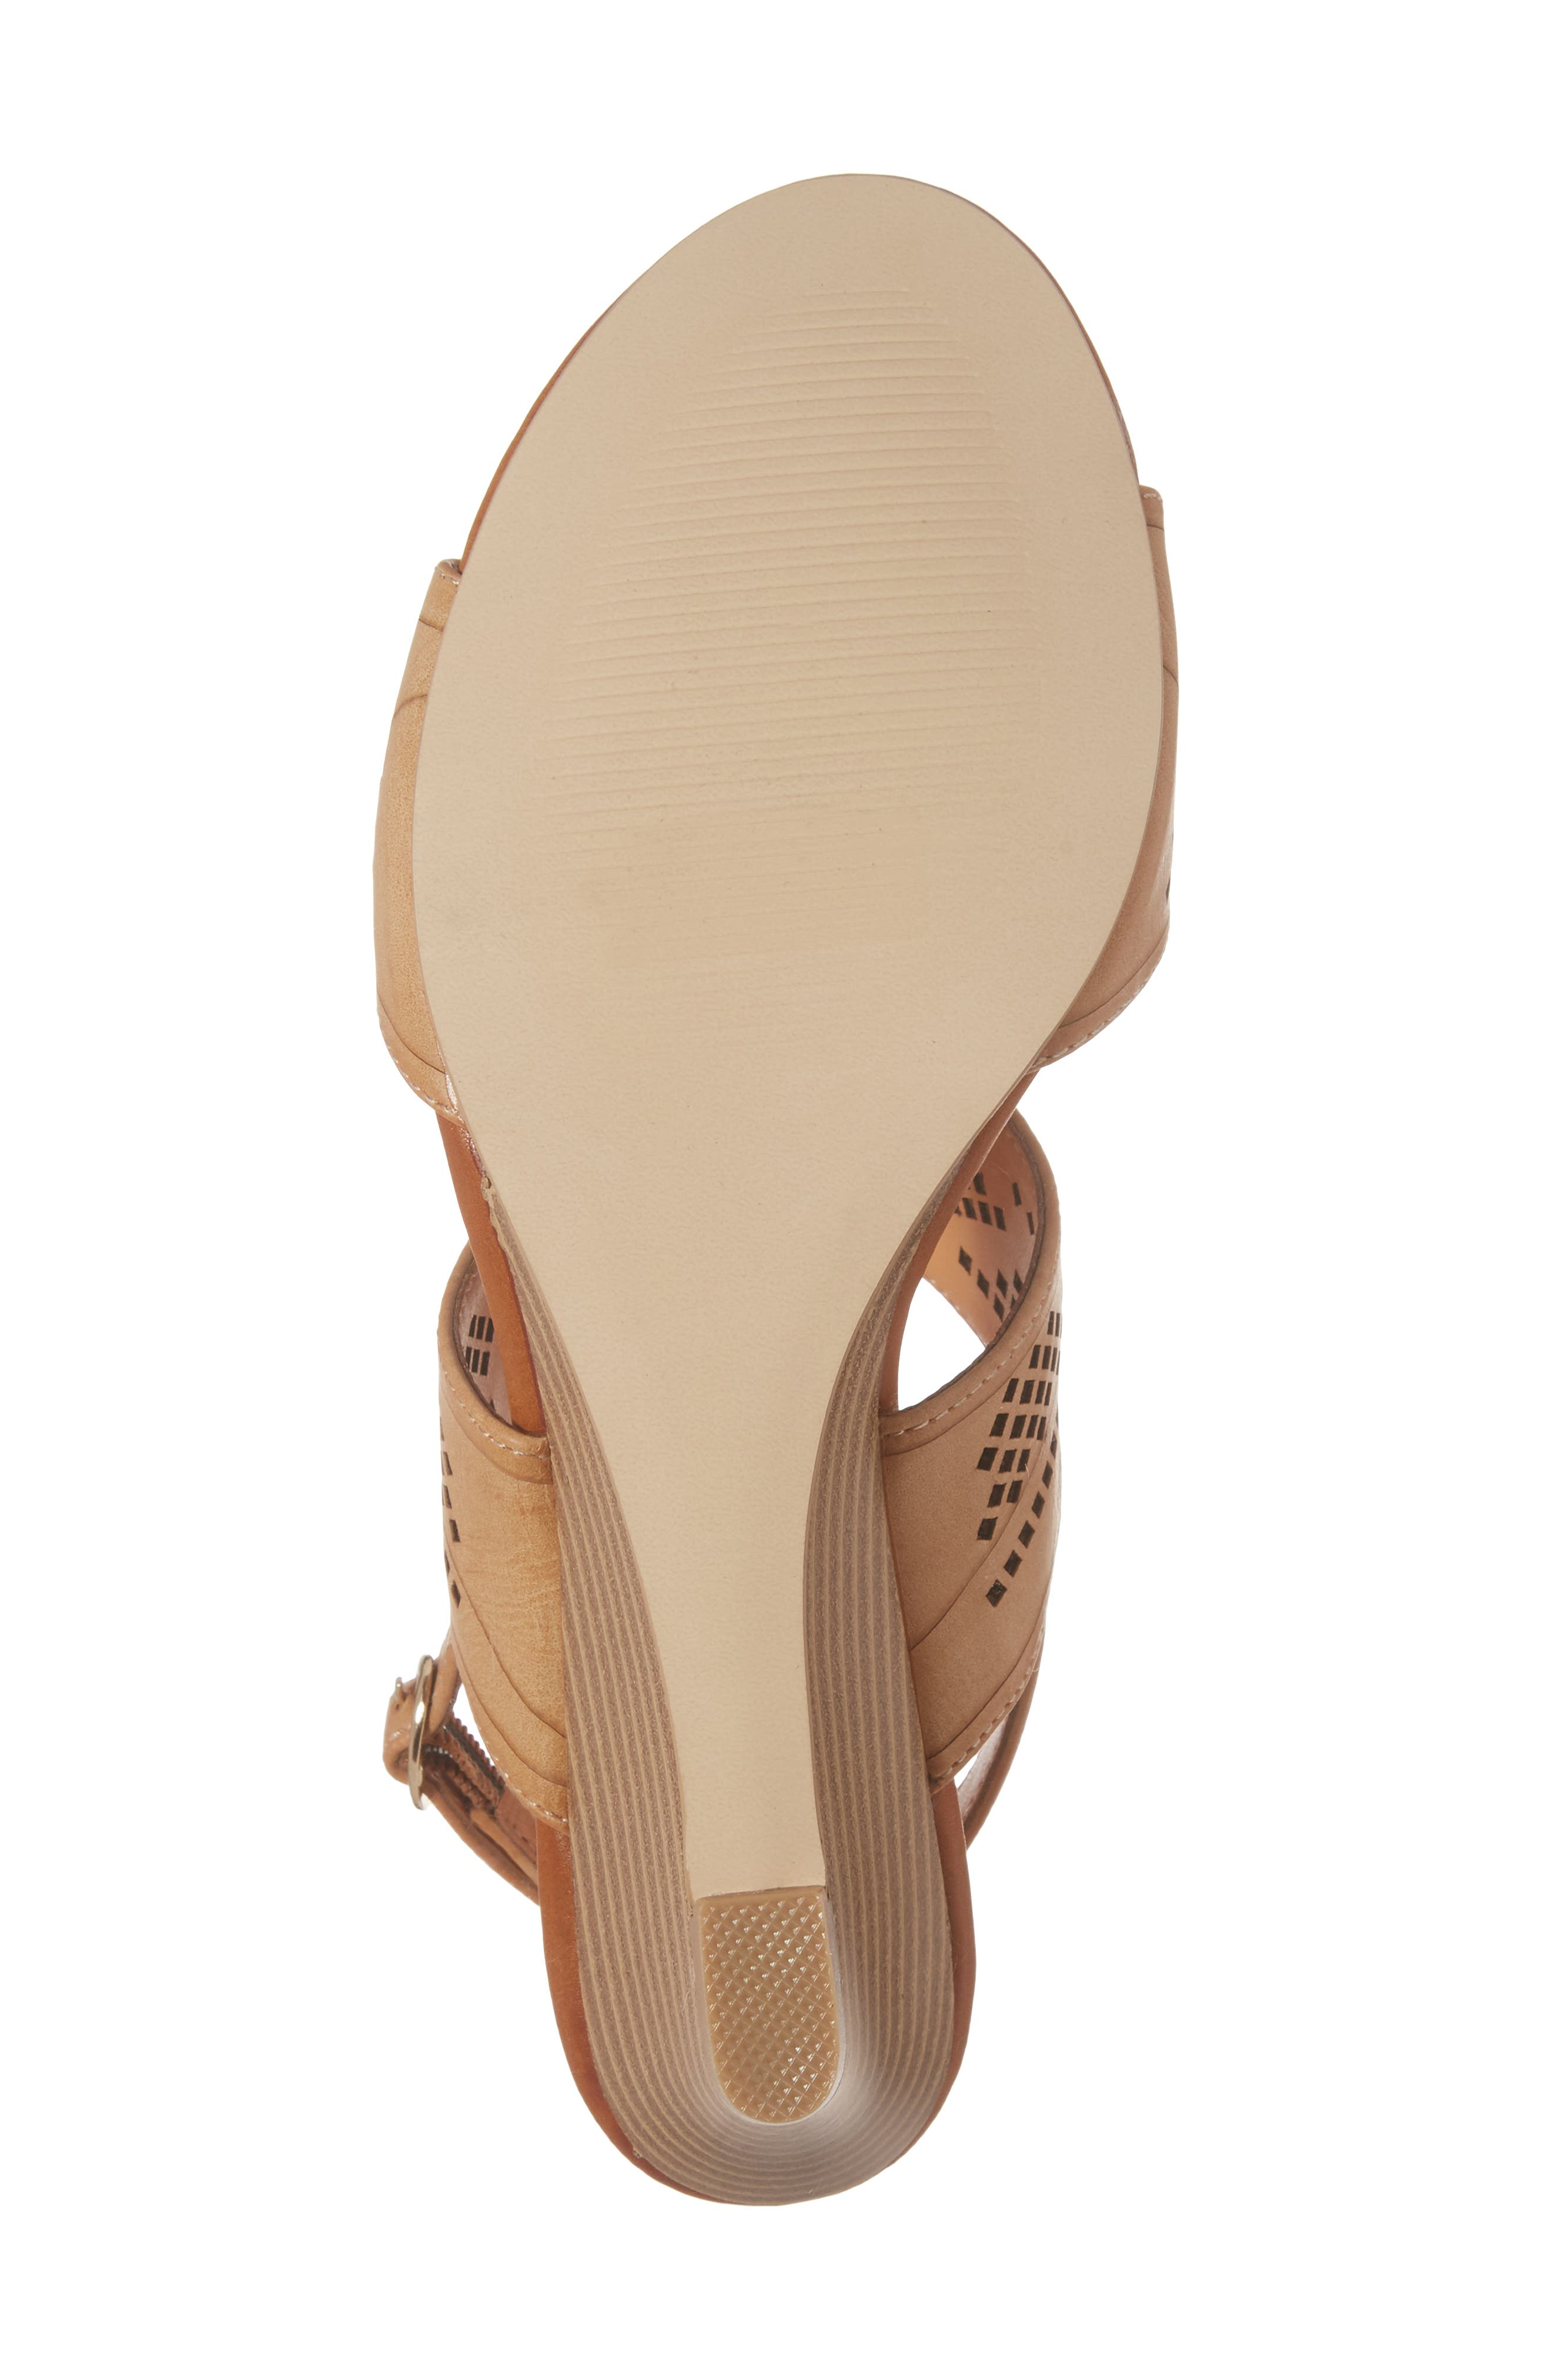 Sparce Perforated Wedge Sandal,                             Alternate thumbnail 12, color,